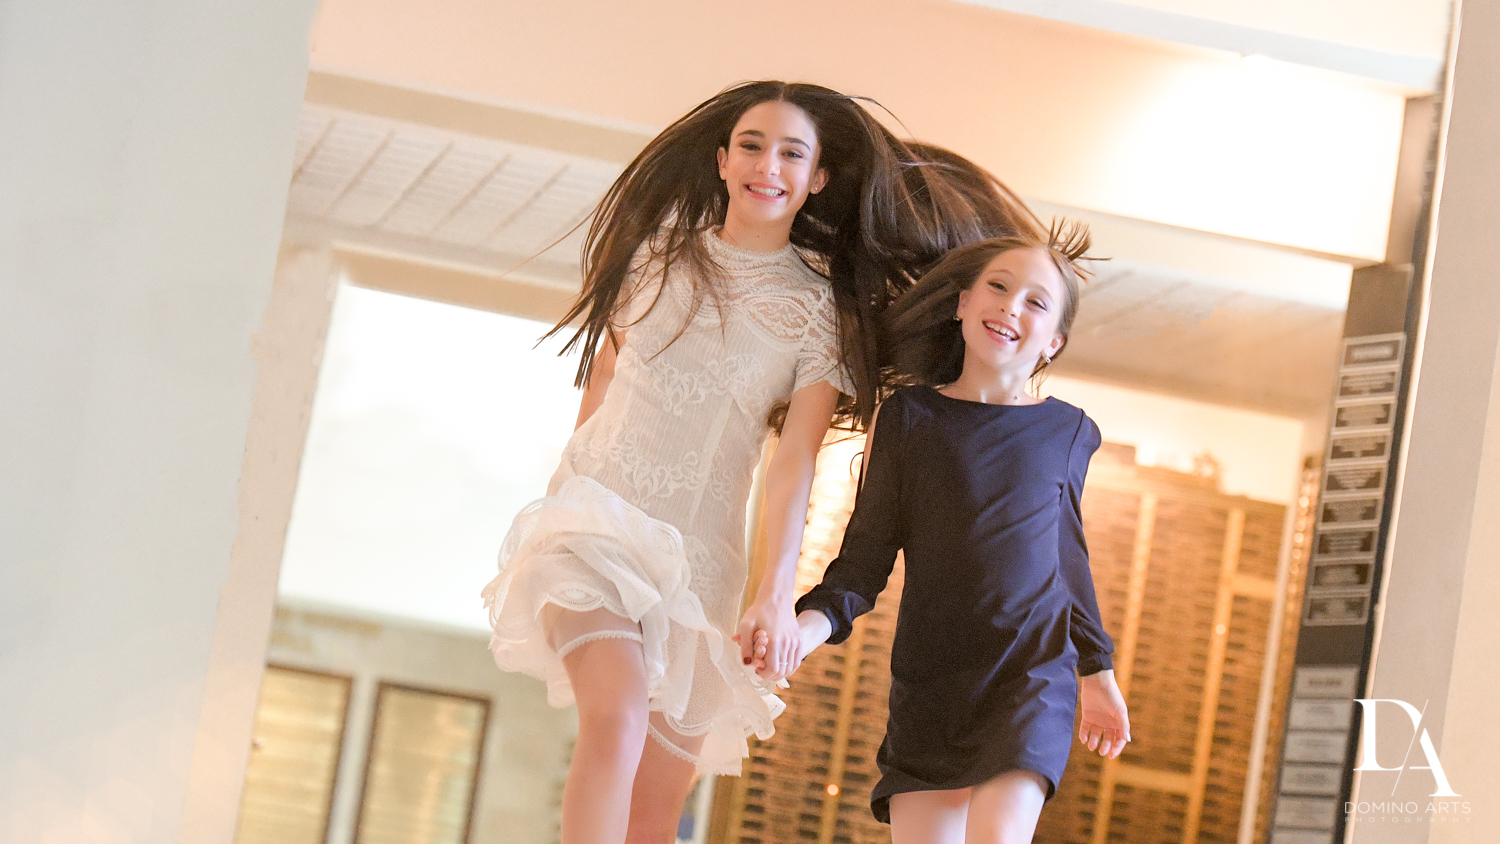 fun sisters at Luxury Celebrity Bat Mitzvah at Four Seasons Hotel Miami by Domino Arts Photography